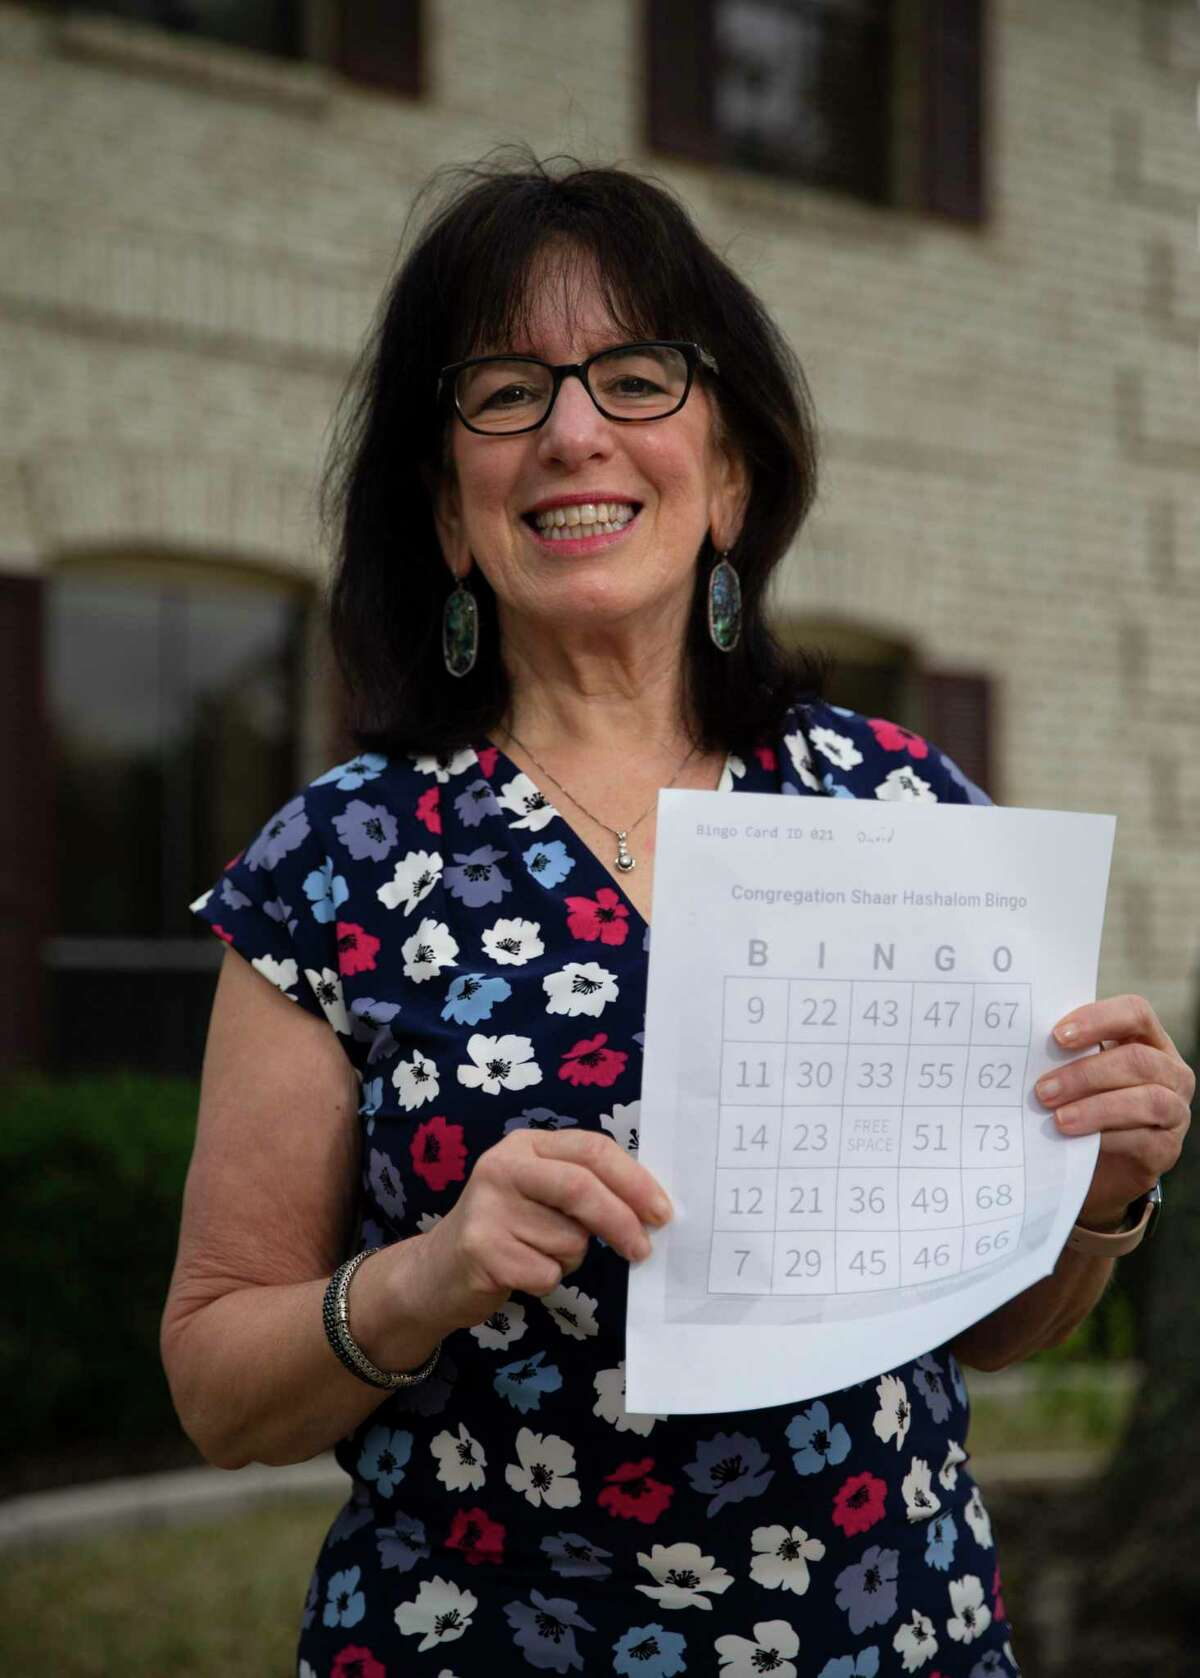 Congregation Shaar Hashalom organizer Sandy Ostrosky delivers a bingo prize in Clear Lake.